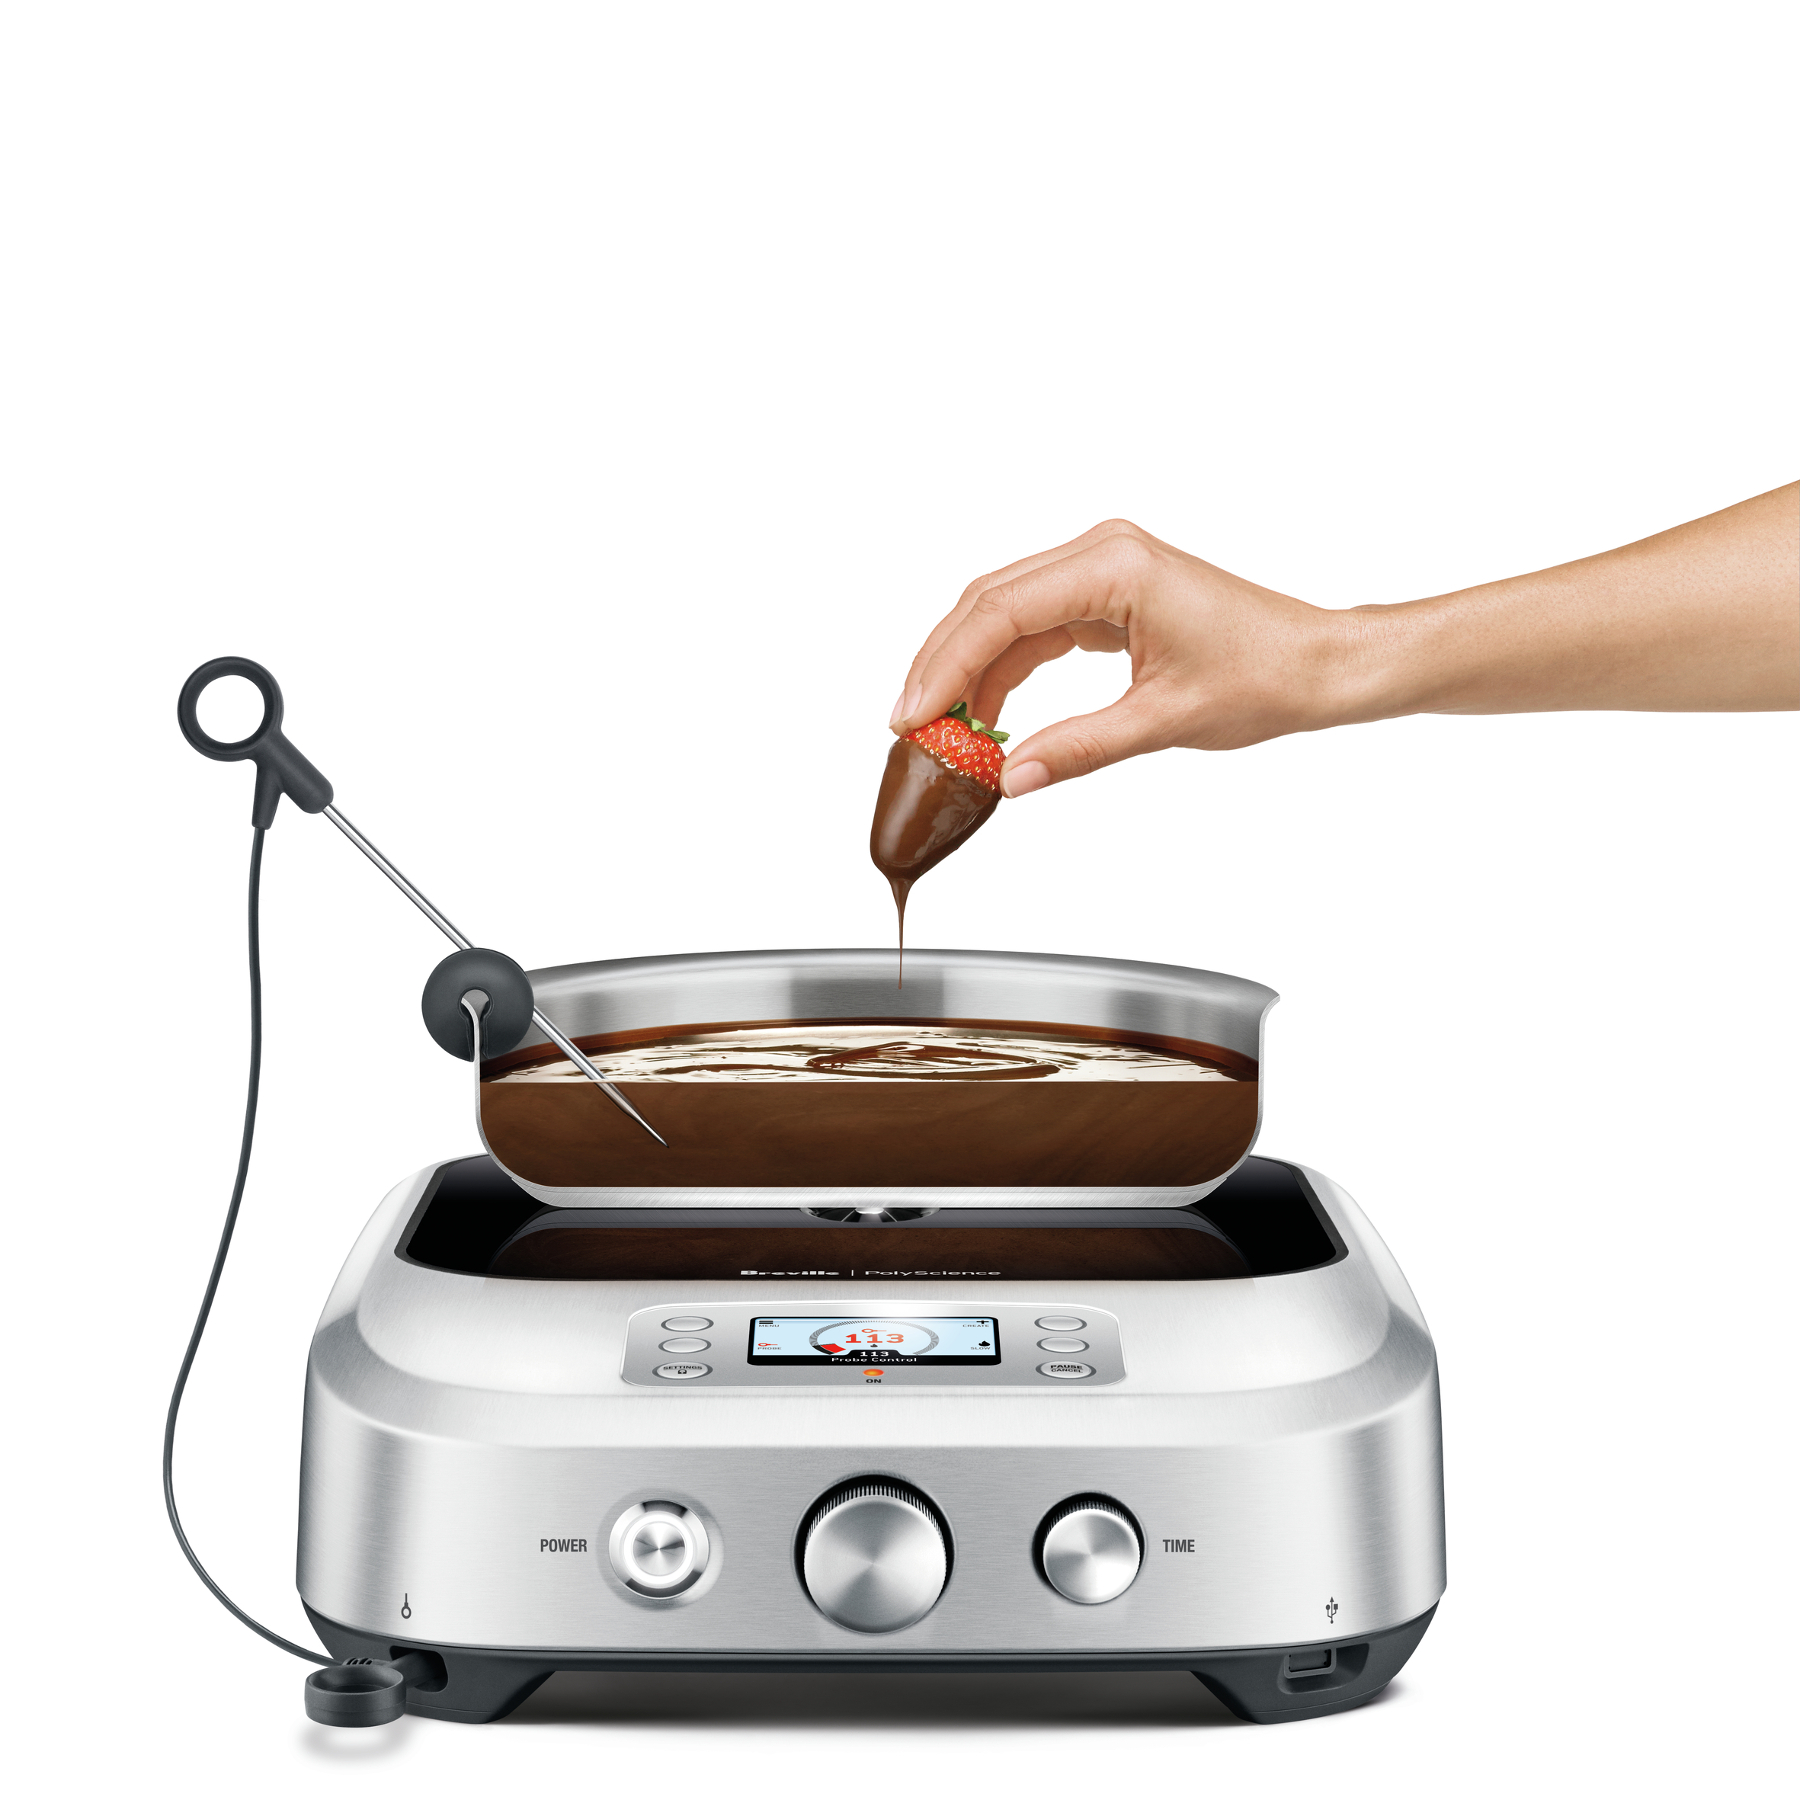 the Control Freak Temperature Controlled Induction Cooking System, 120V